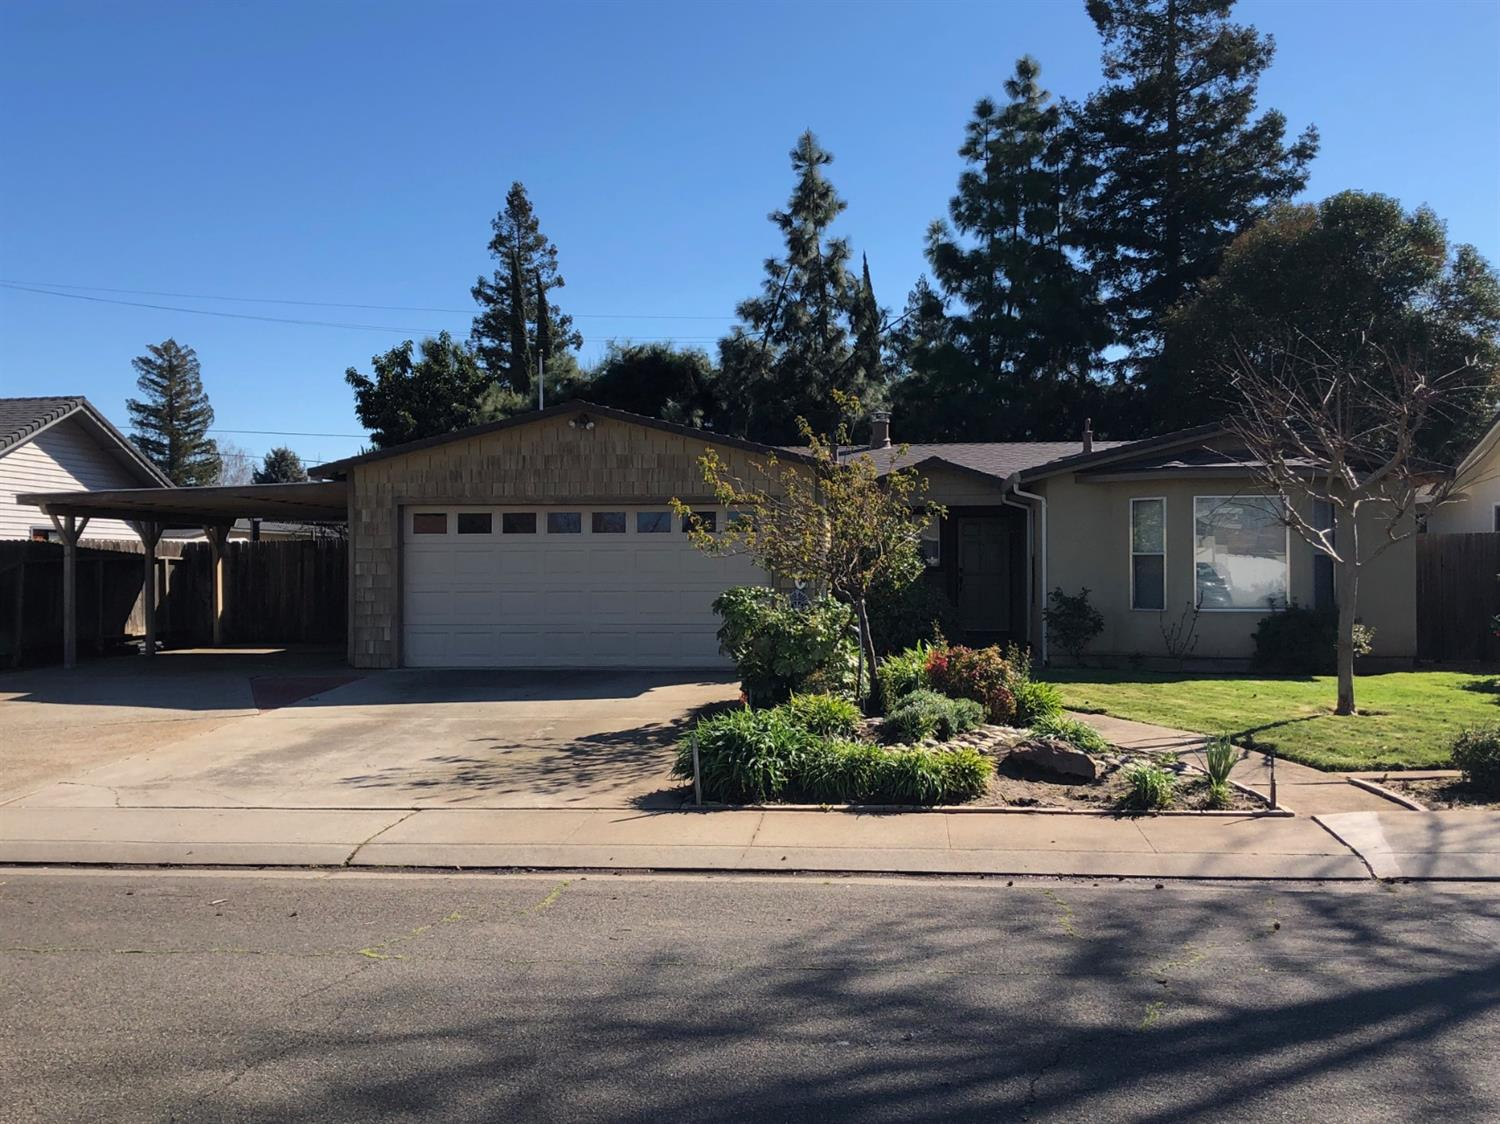 Linden California Map.5310 Knox Dr Linden Ca 95236 Mls 19005783 Coldwell Banker